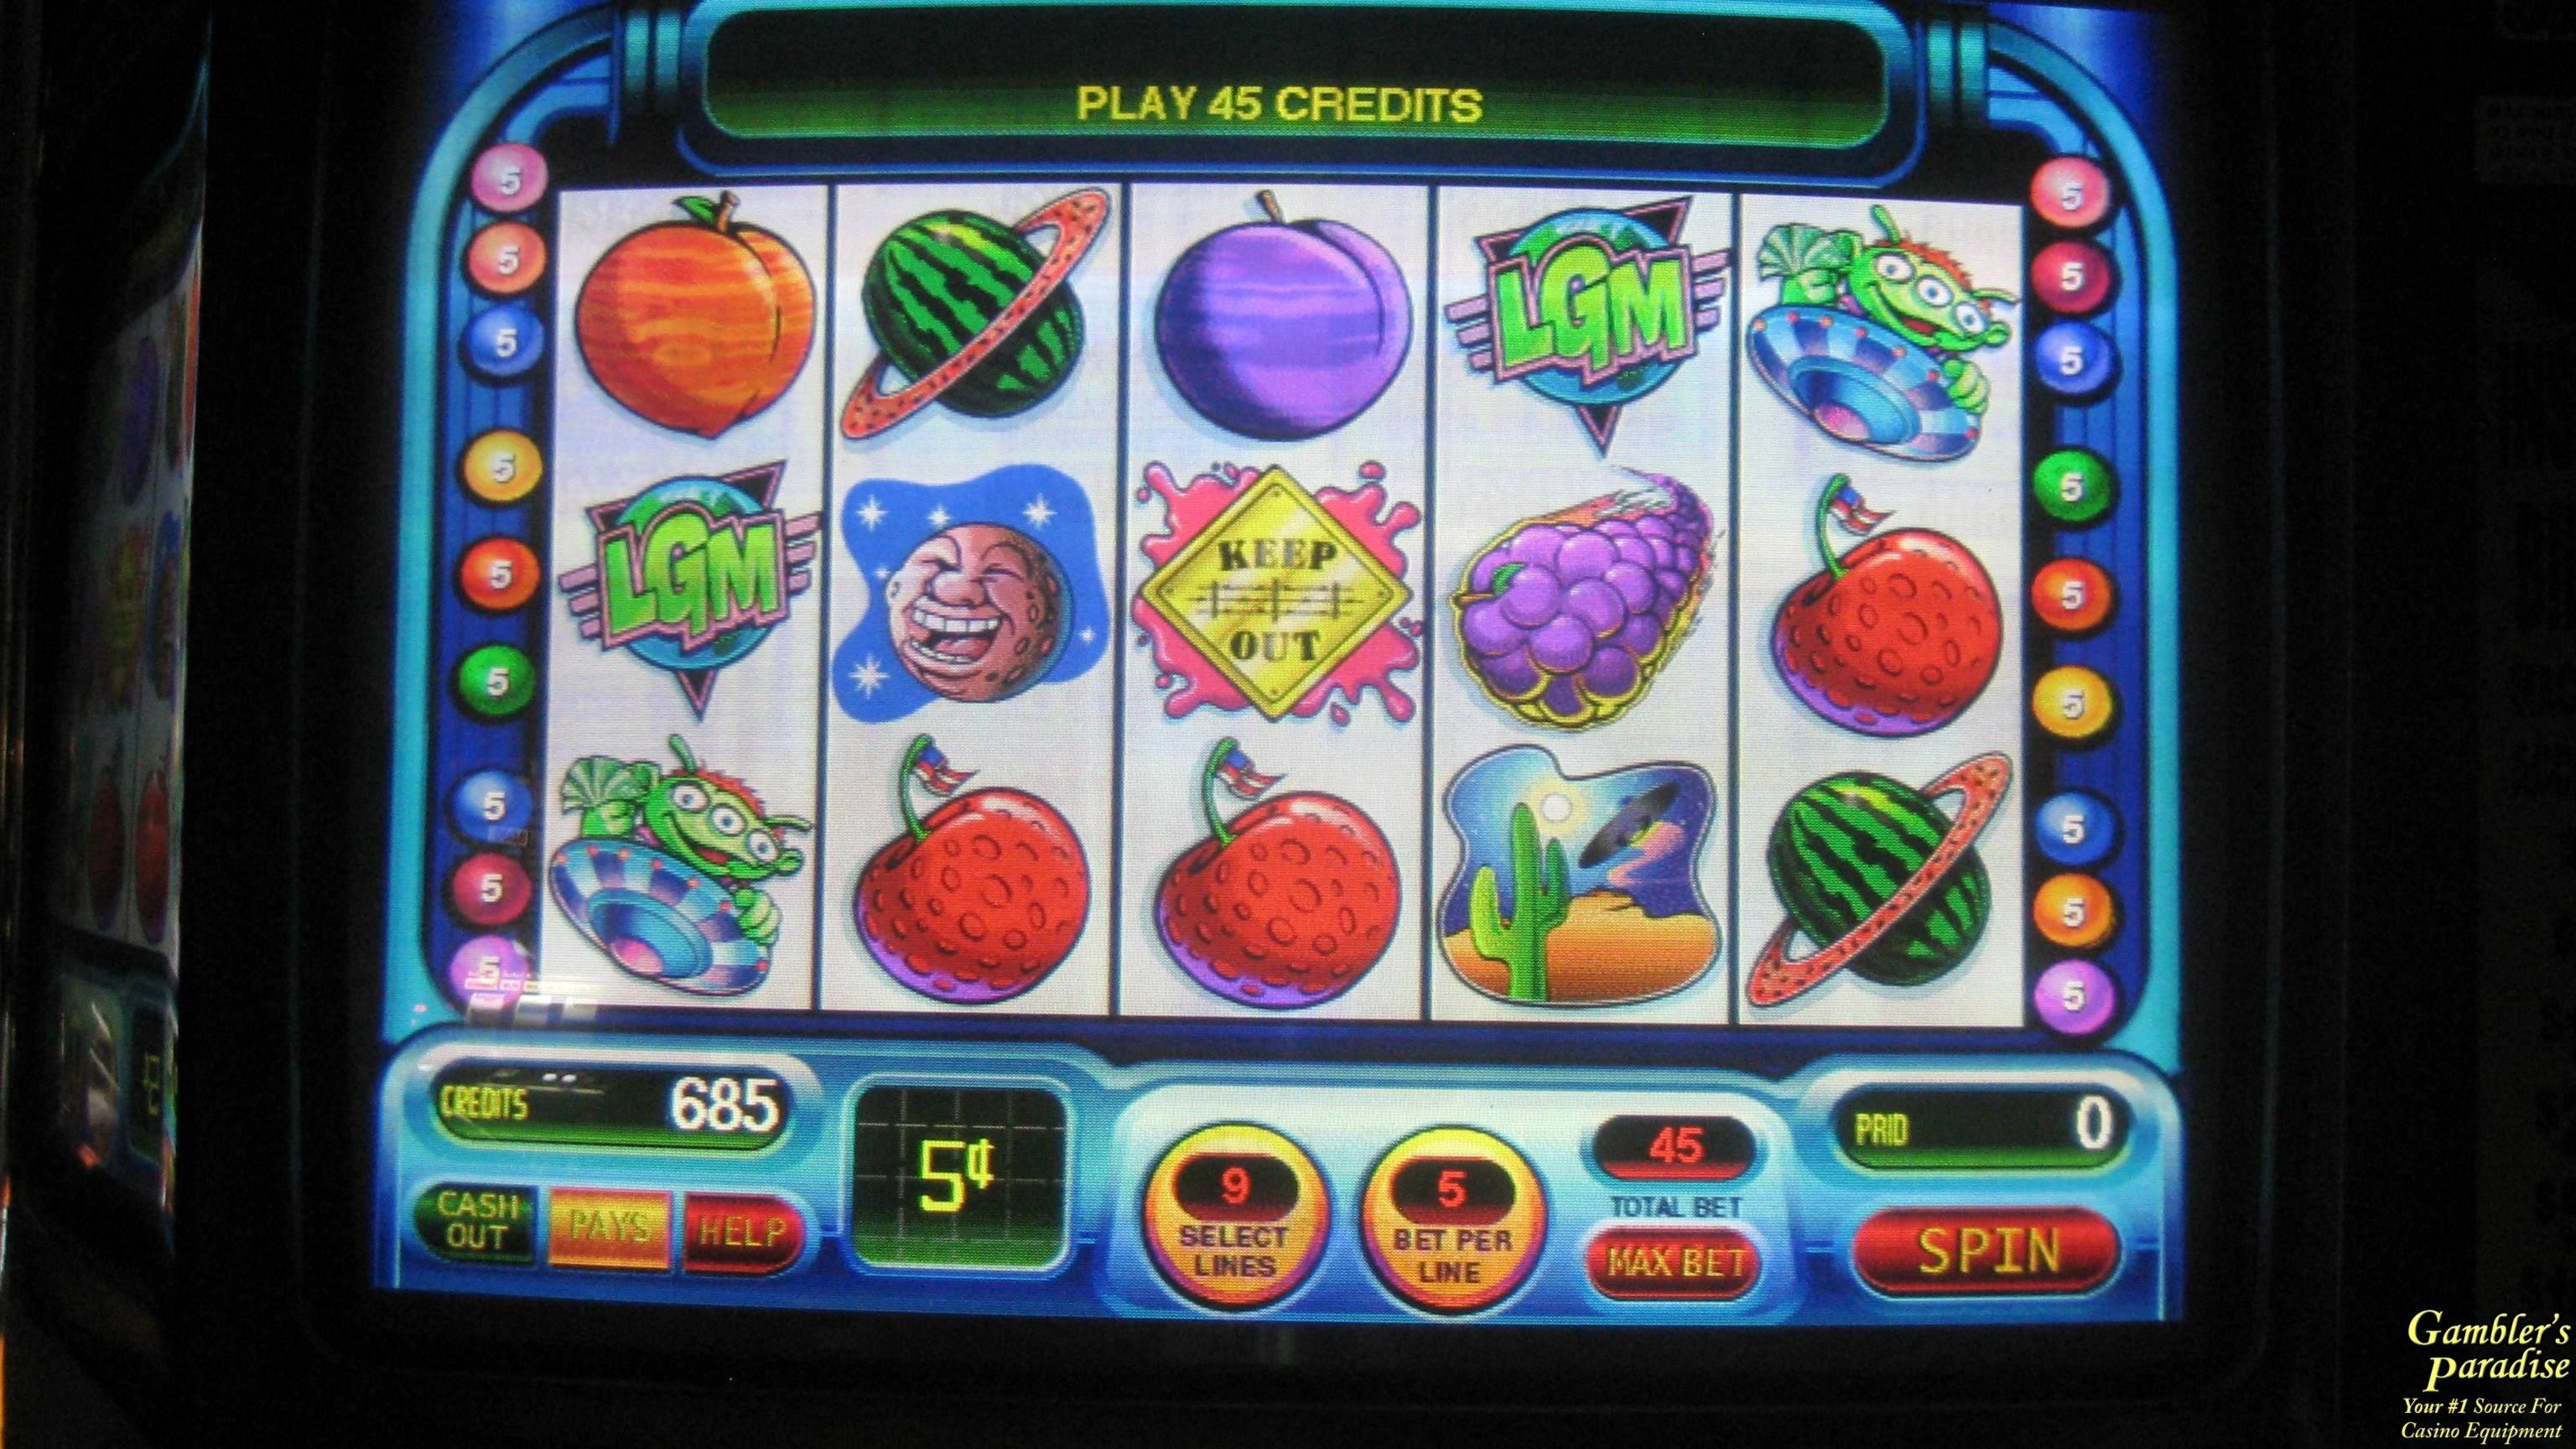 35 Spins non Solvo Play Casino ad Spintropolis